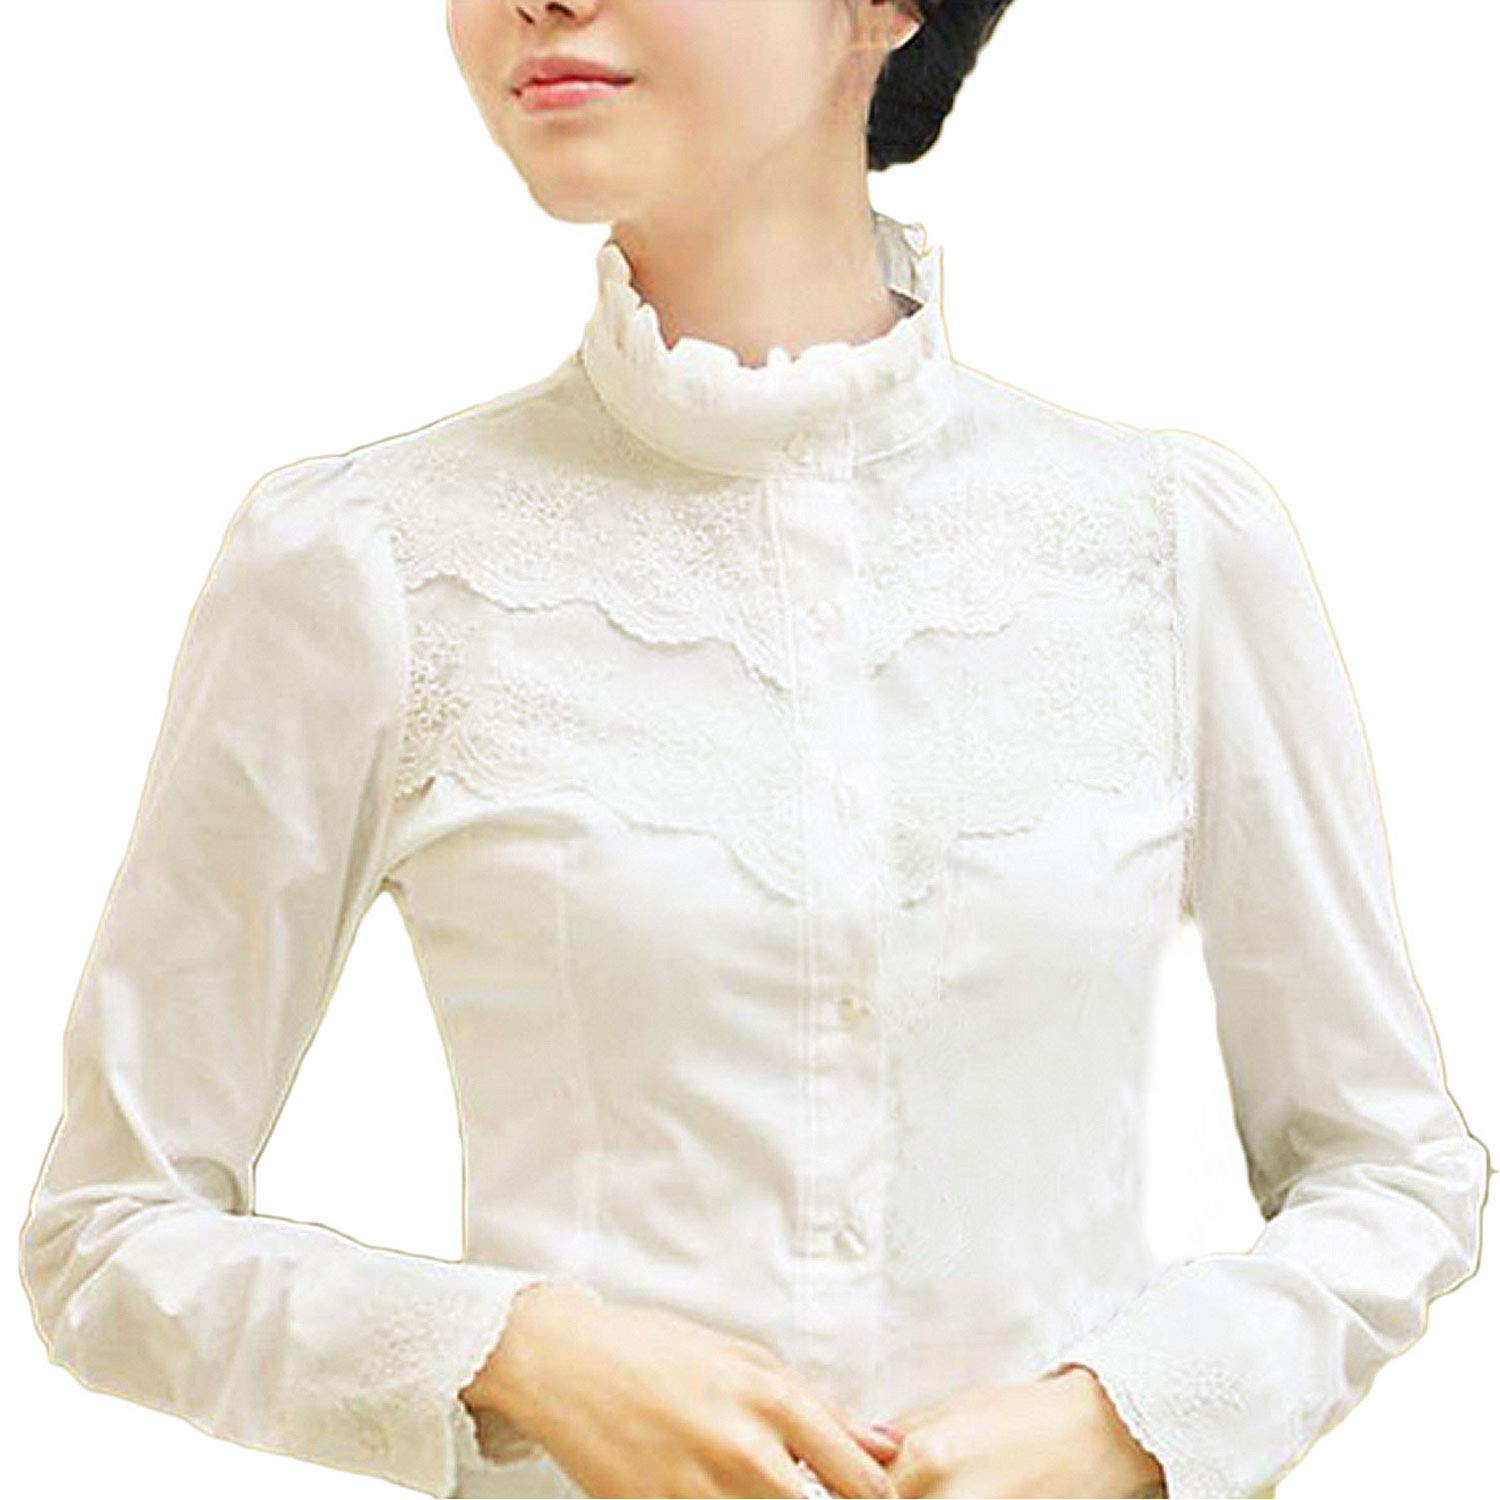 Victorian Blouses, Tops, Shirts, Vests Nonbrand Winter Office Long Sleeve Shirt Lace Top Womens Vintage Blouse Ladies Victorian Tops £15.42 AT vintagedancer.com